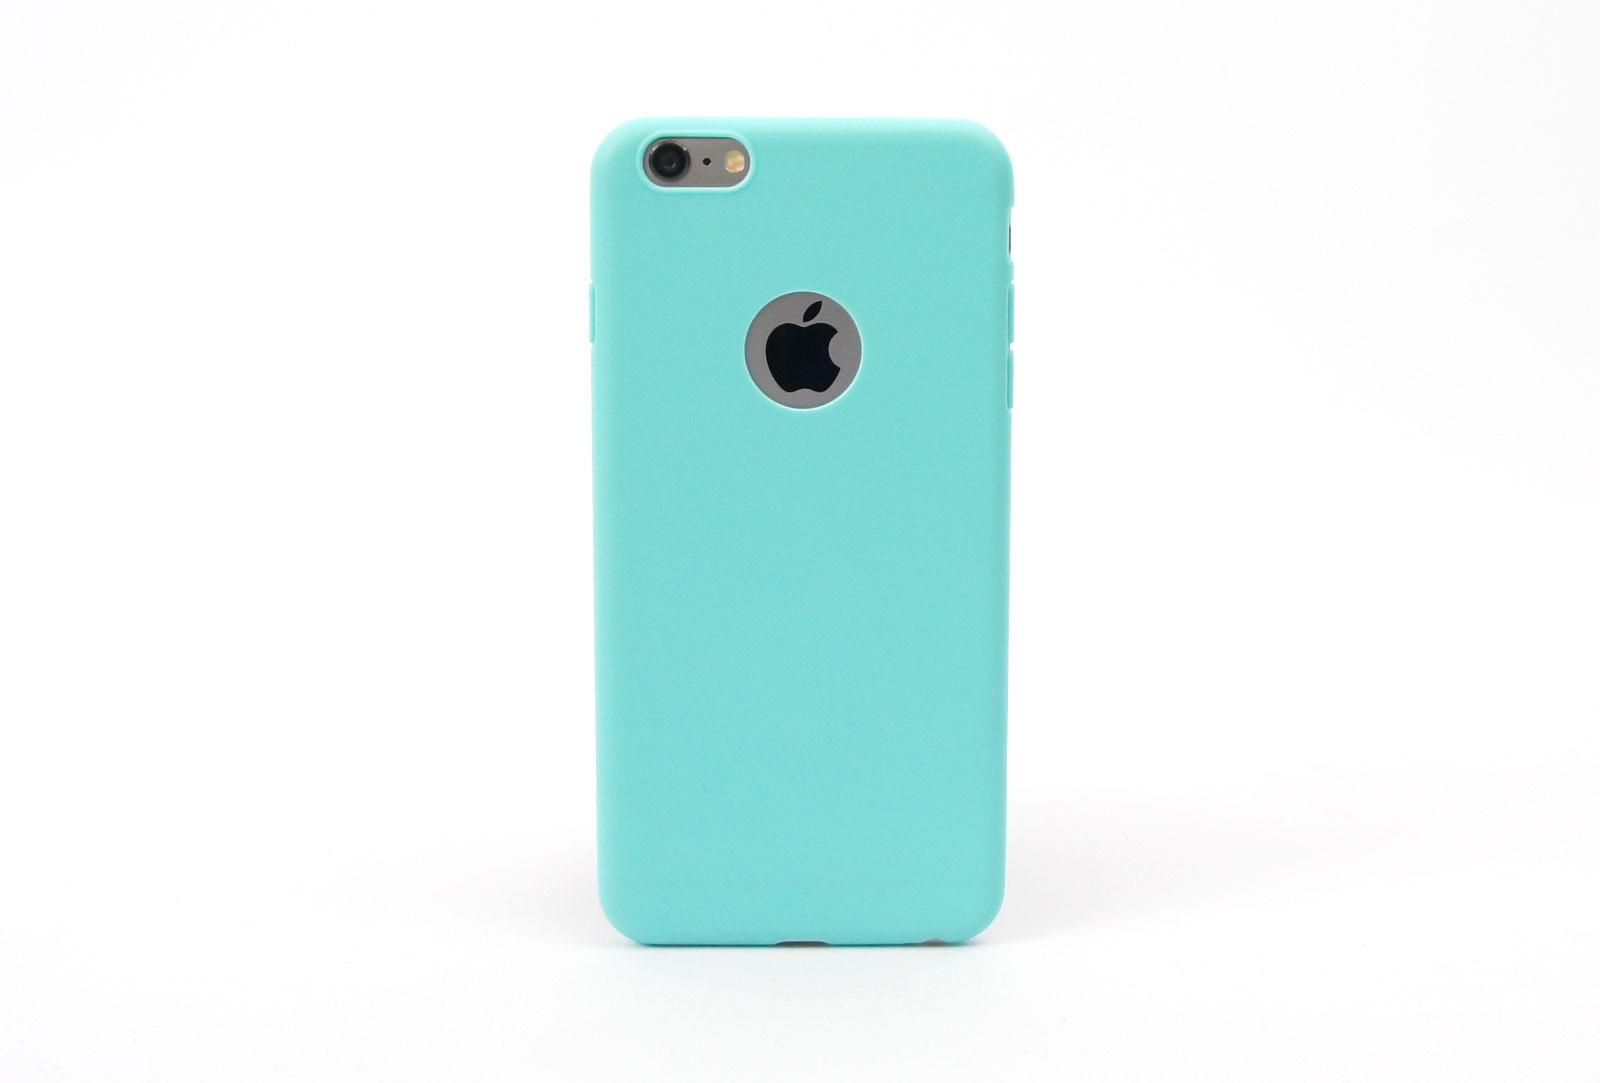 coque silicone souple turquoise pour iphone 6 s et iphone 6. Black Bedroom Furniture Sets. Home Design Ideas